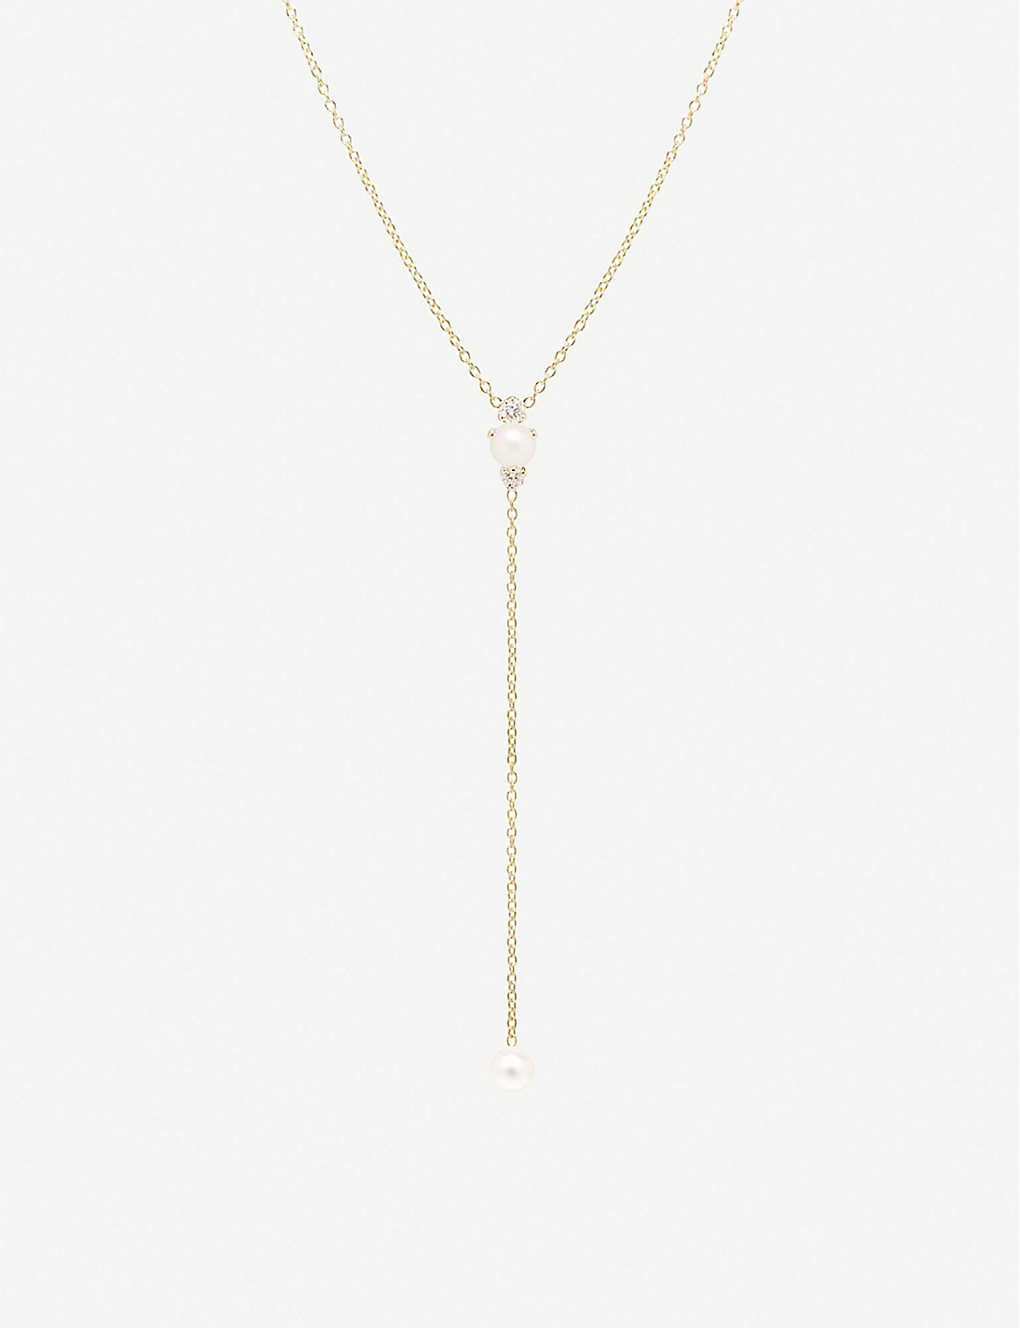 THE ALKEMISTRY: Zoë Chicco 14ct yellow-gold, freshwater pearl and diamond lariat necklace